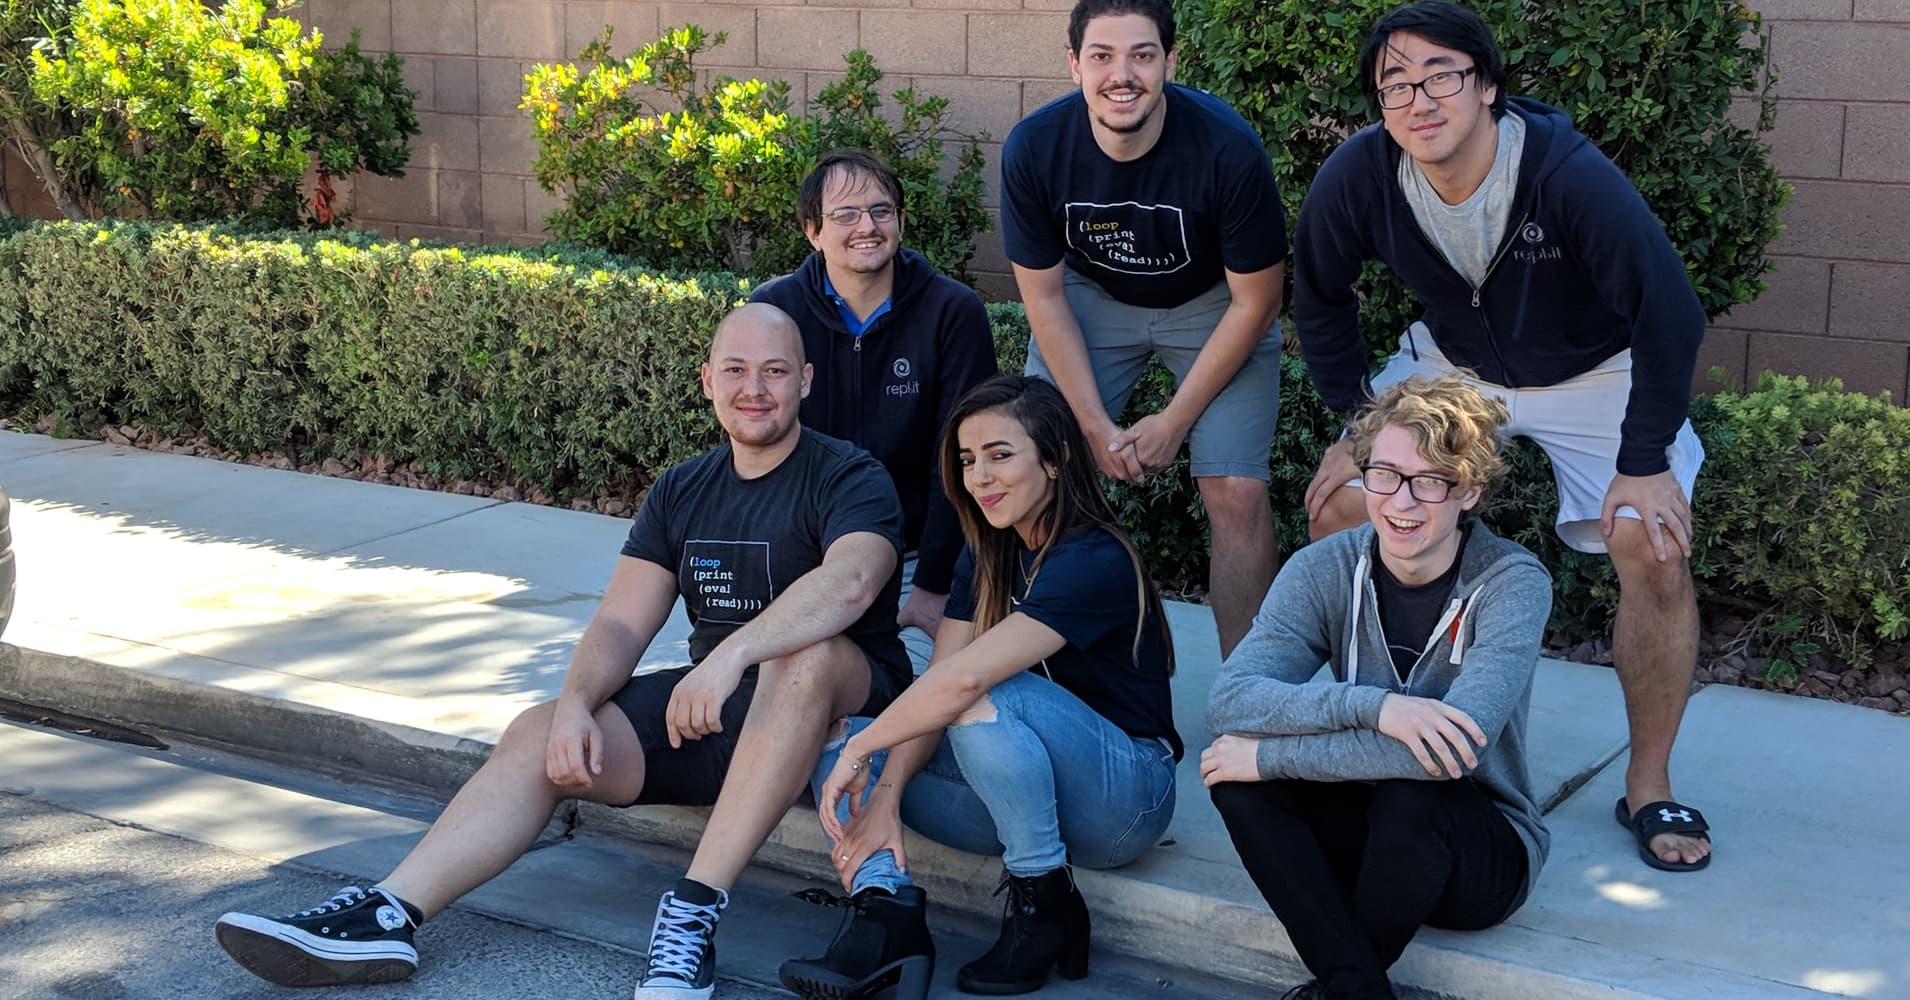 Repl.it Co-founders Amjad Masad (bottom left) and Haya Odeh (bottom middle) have raised a $4.5 million seed round led by Andreessen Horowitz.